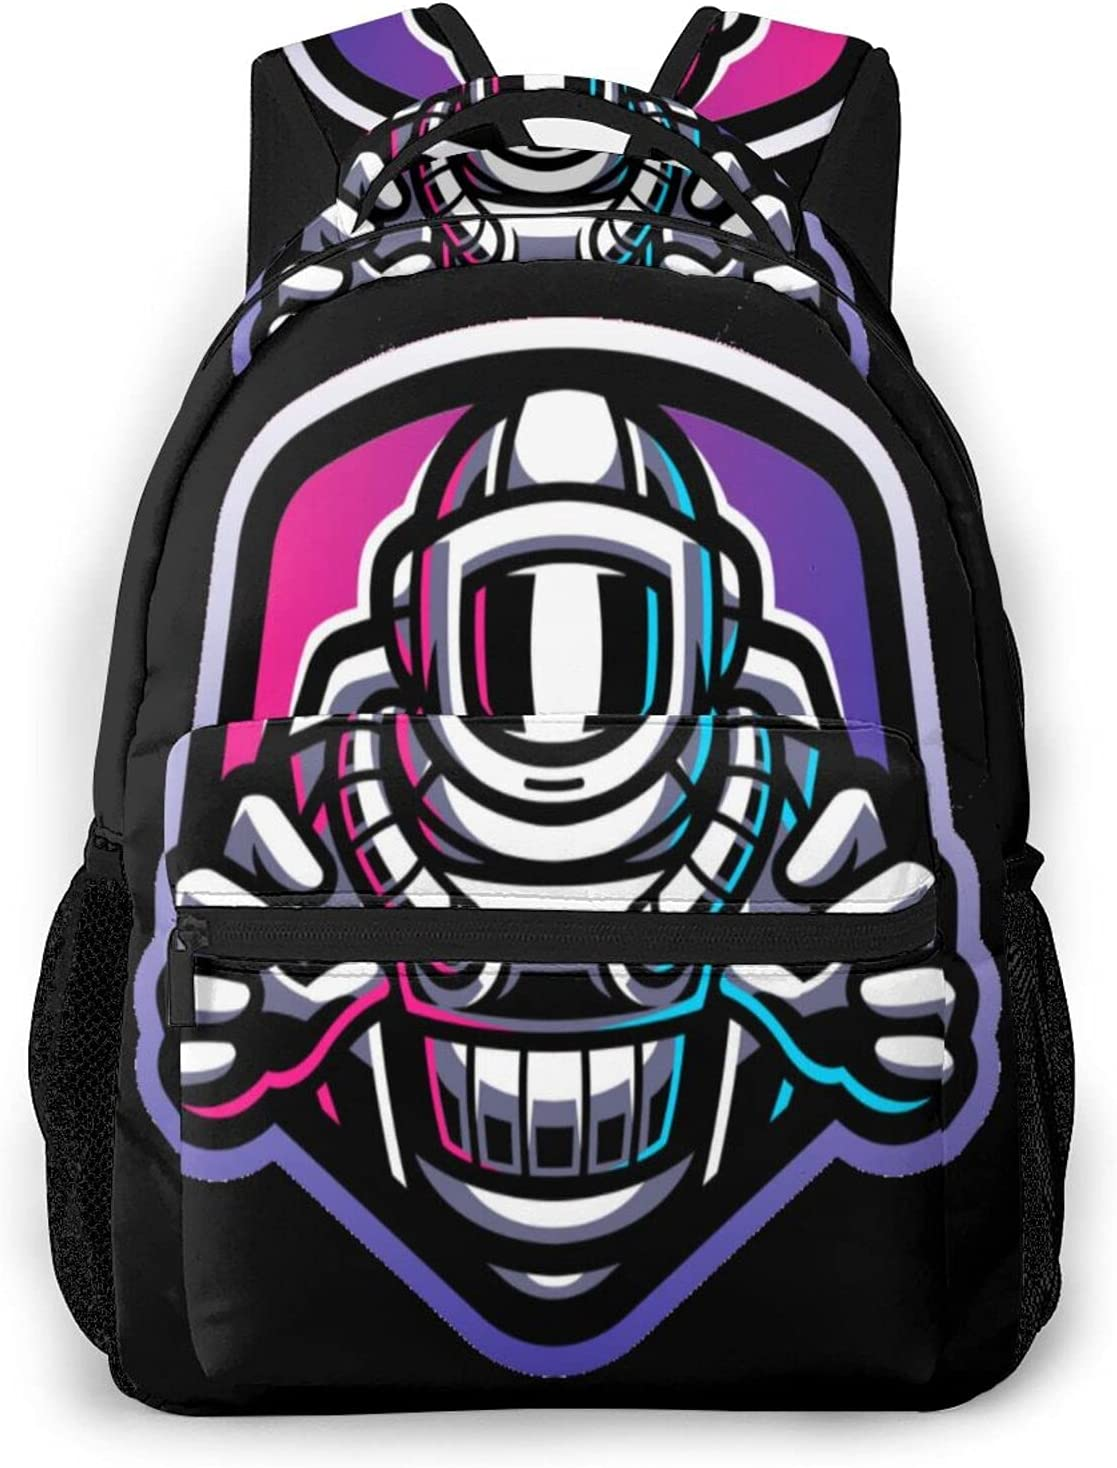 Excellent Astronaut Very popular! in Galaxy 3D Printing College Laptop Bookbags Rucksack